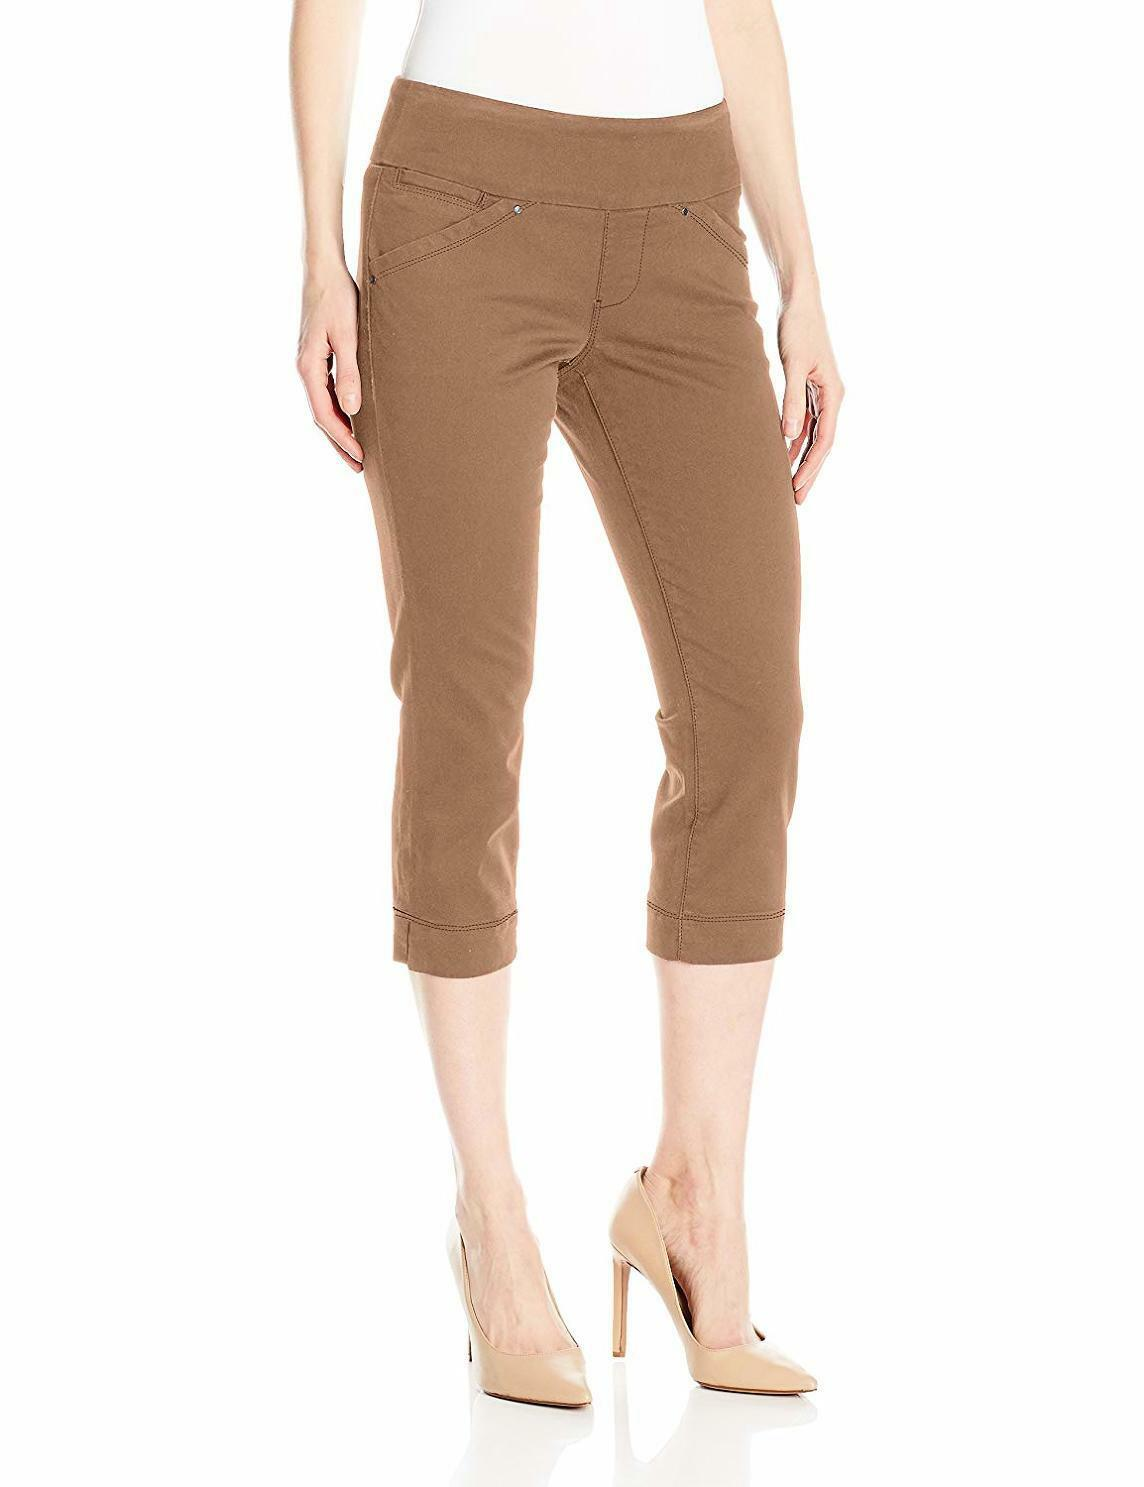 Jag Jeans Women's Petite Marion Pull On Crop in Bay Twill, - Choose SZ color